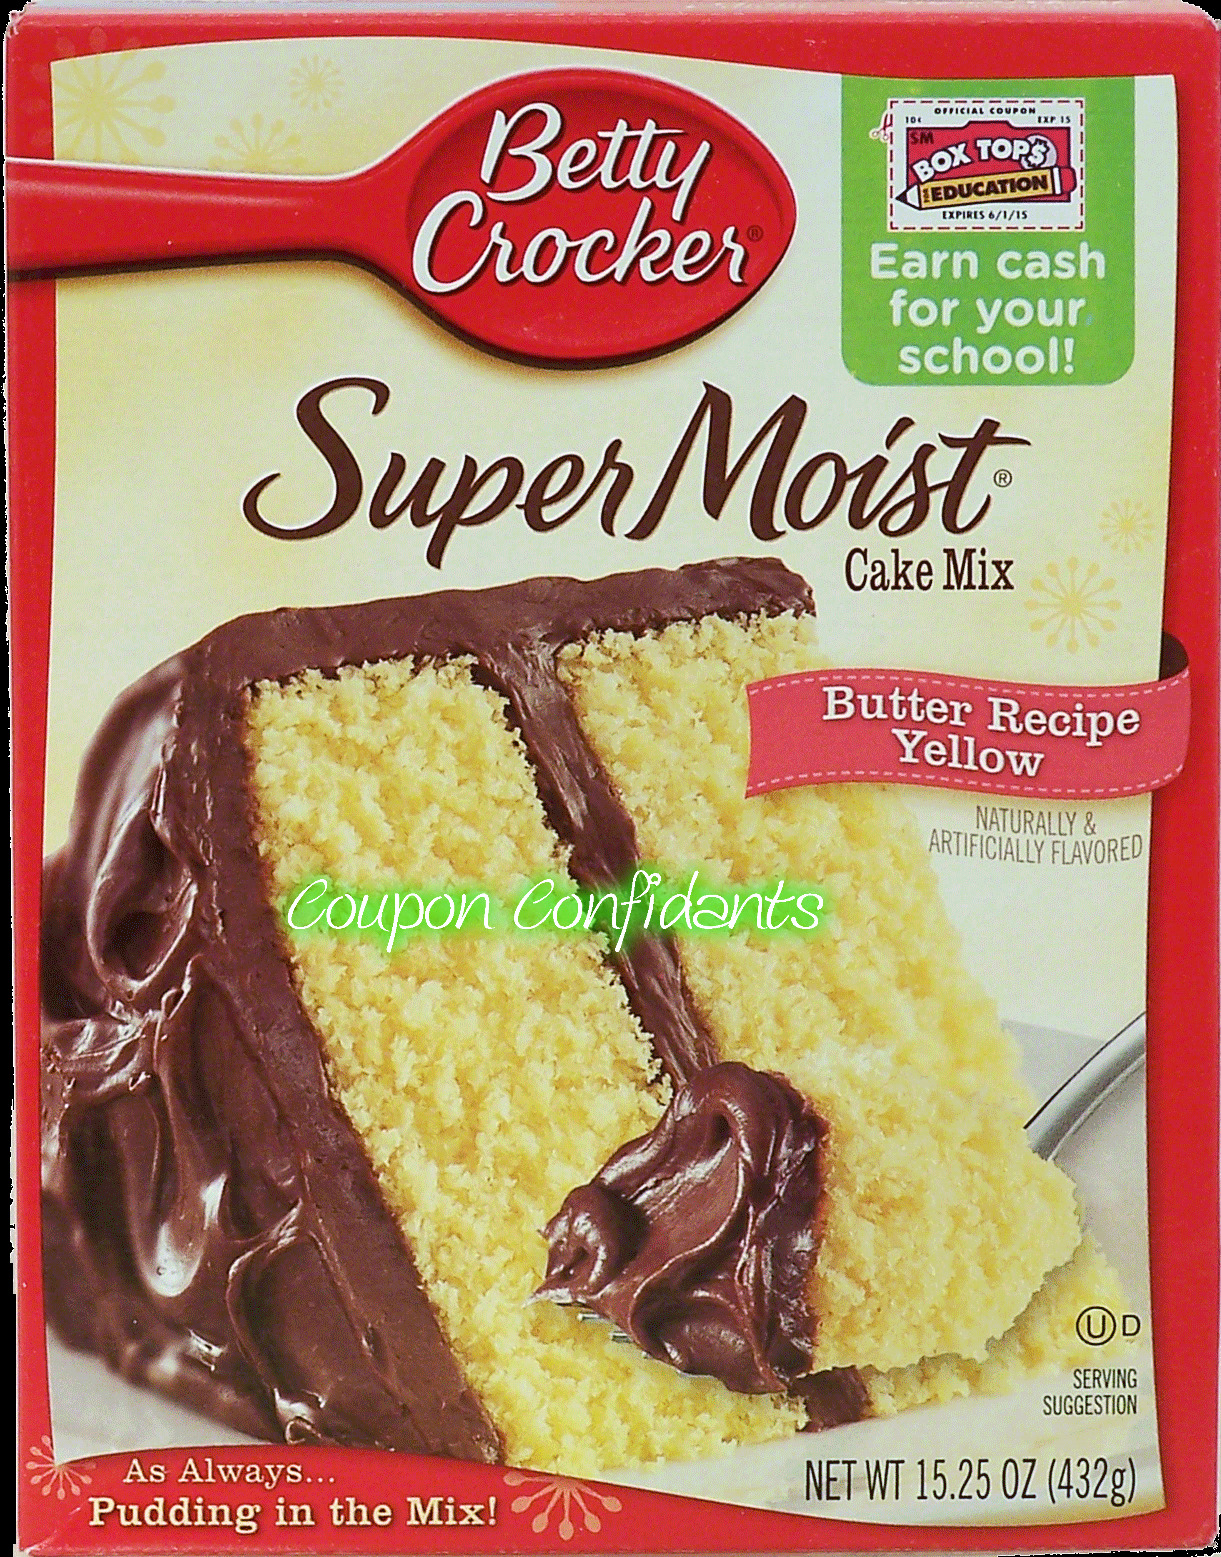 HOT deal on cake mix at Kmart!! ⋆ Coupon Confidants